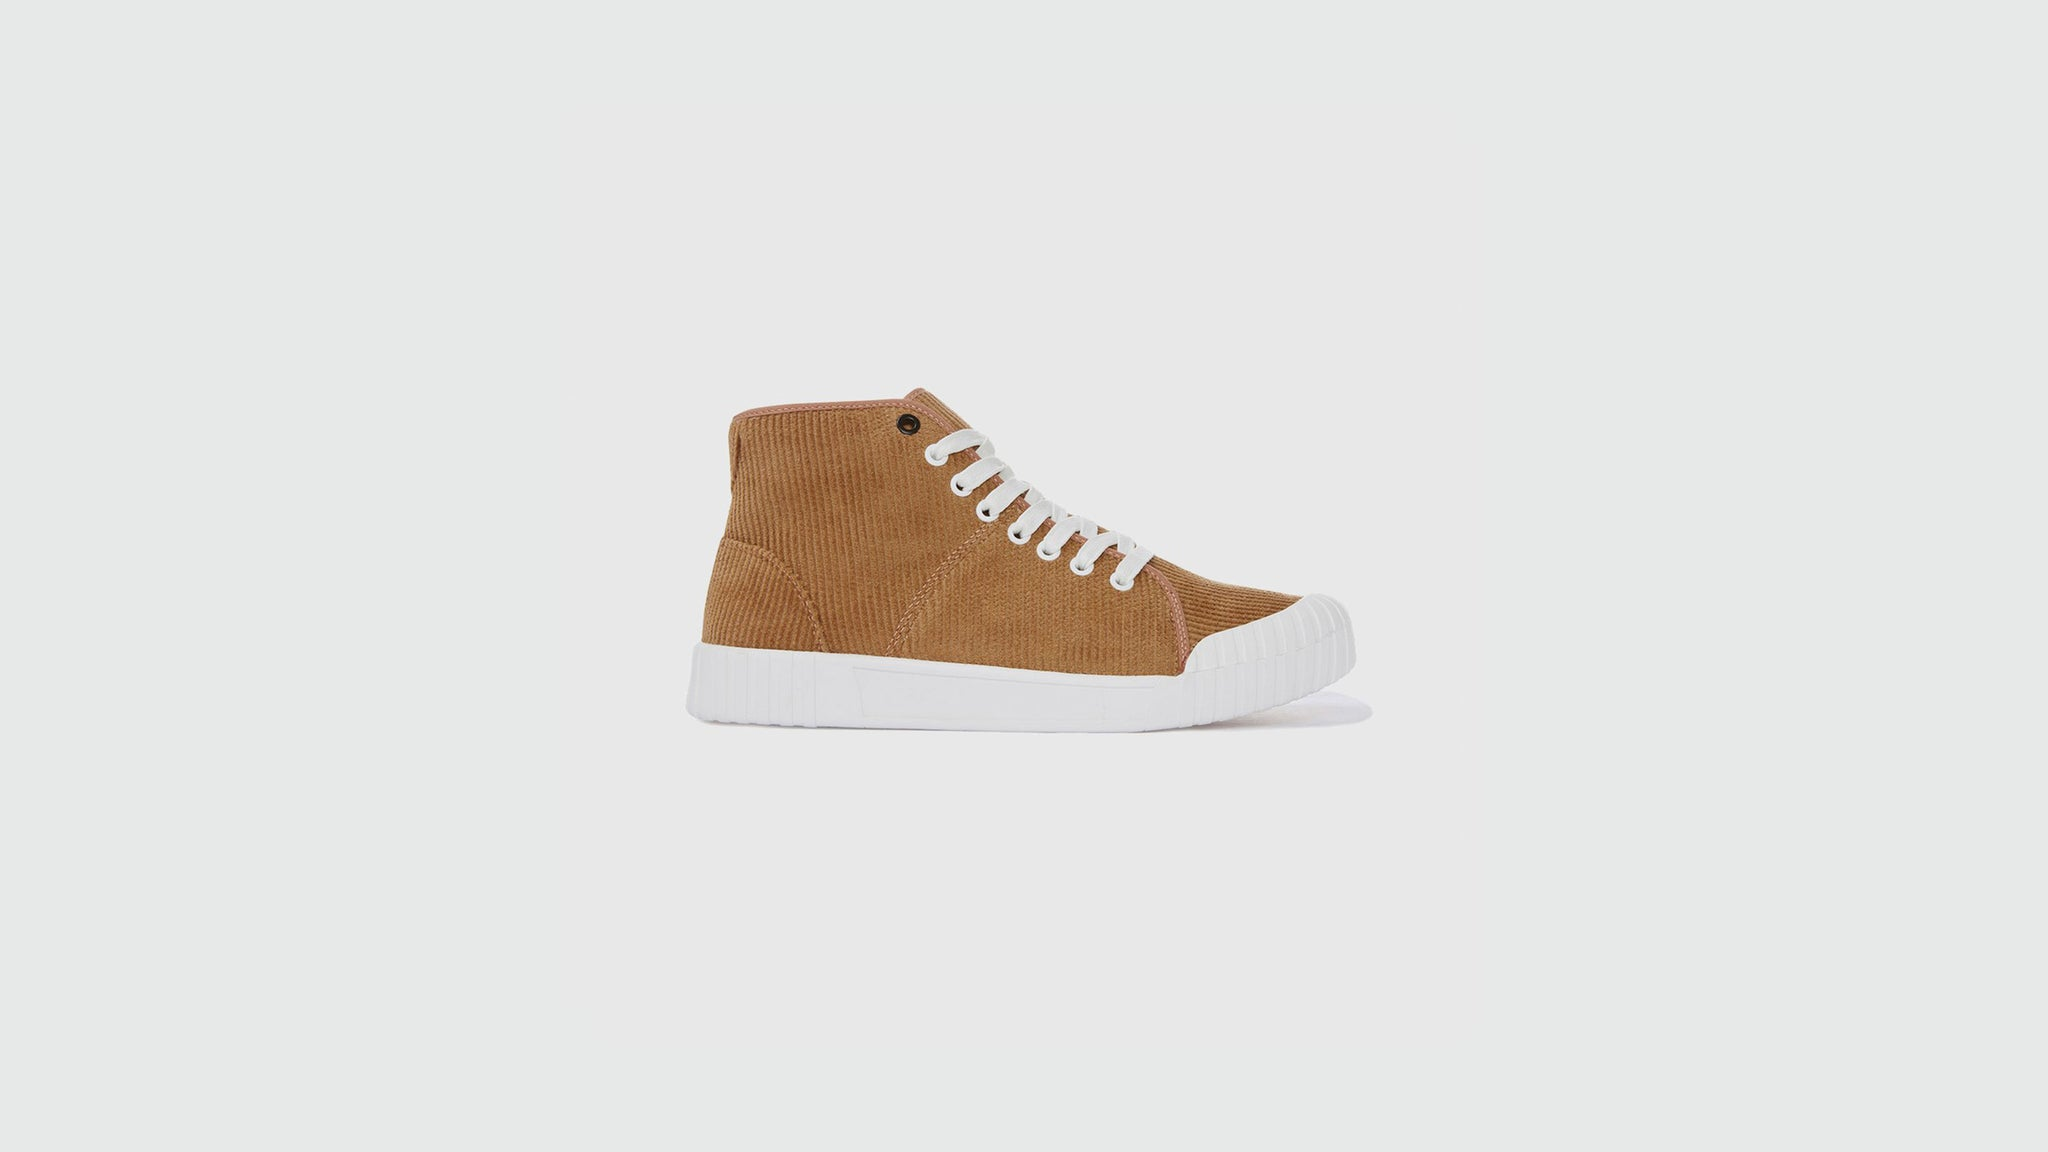 Good News. Rhubarb high sneakers tan